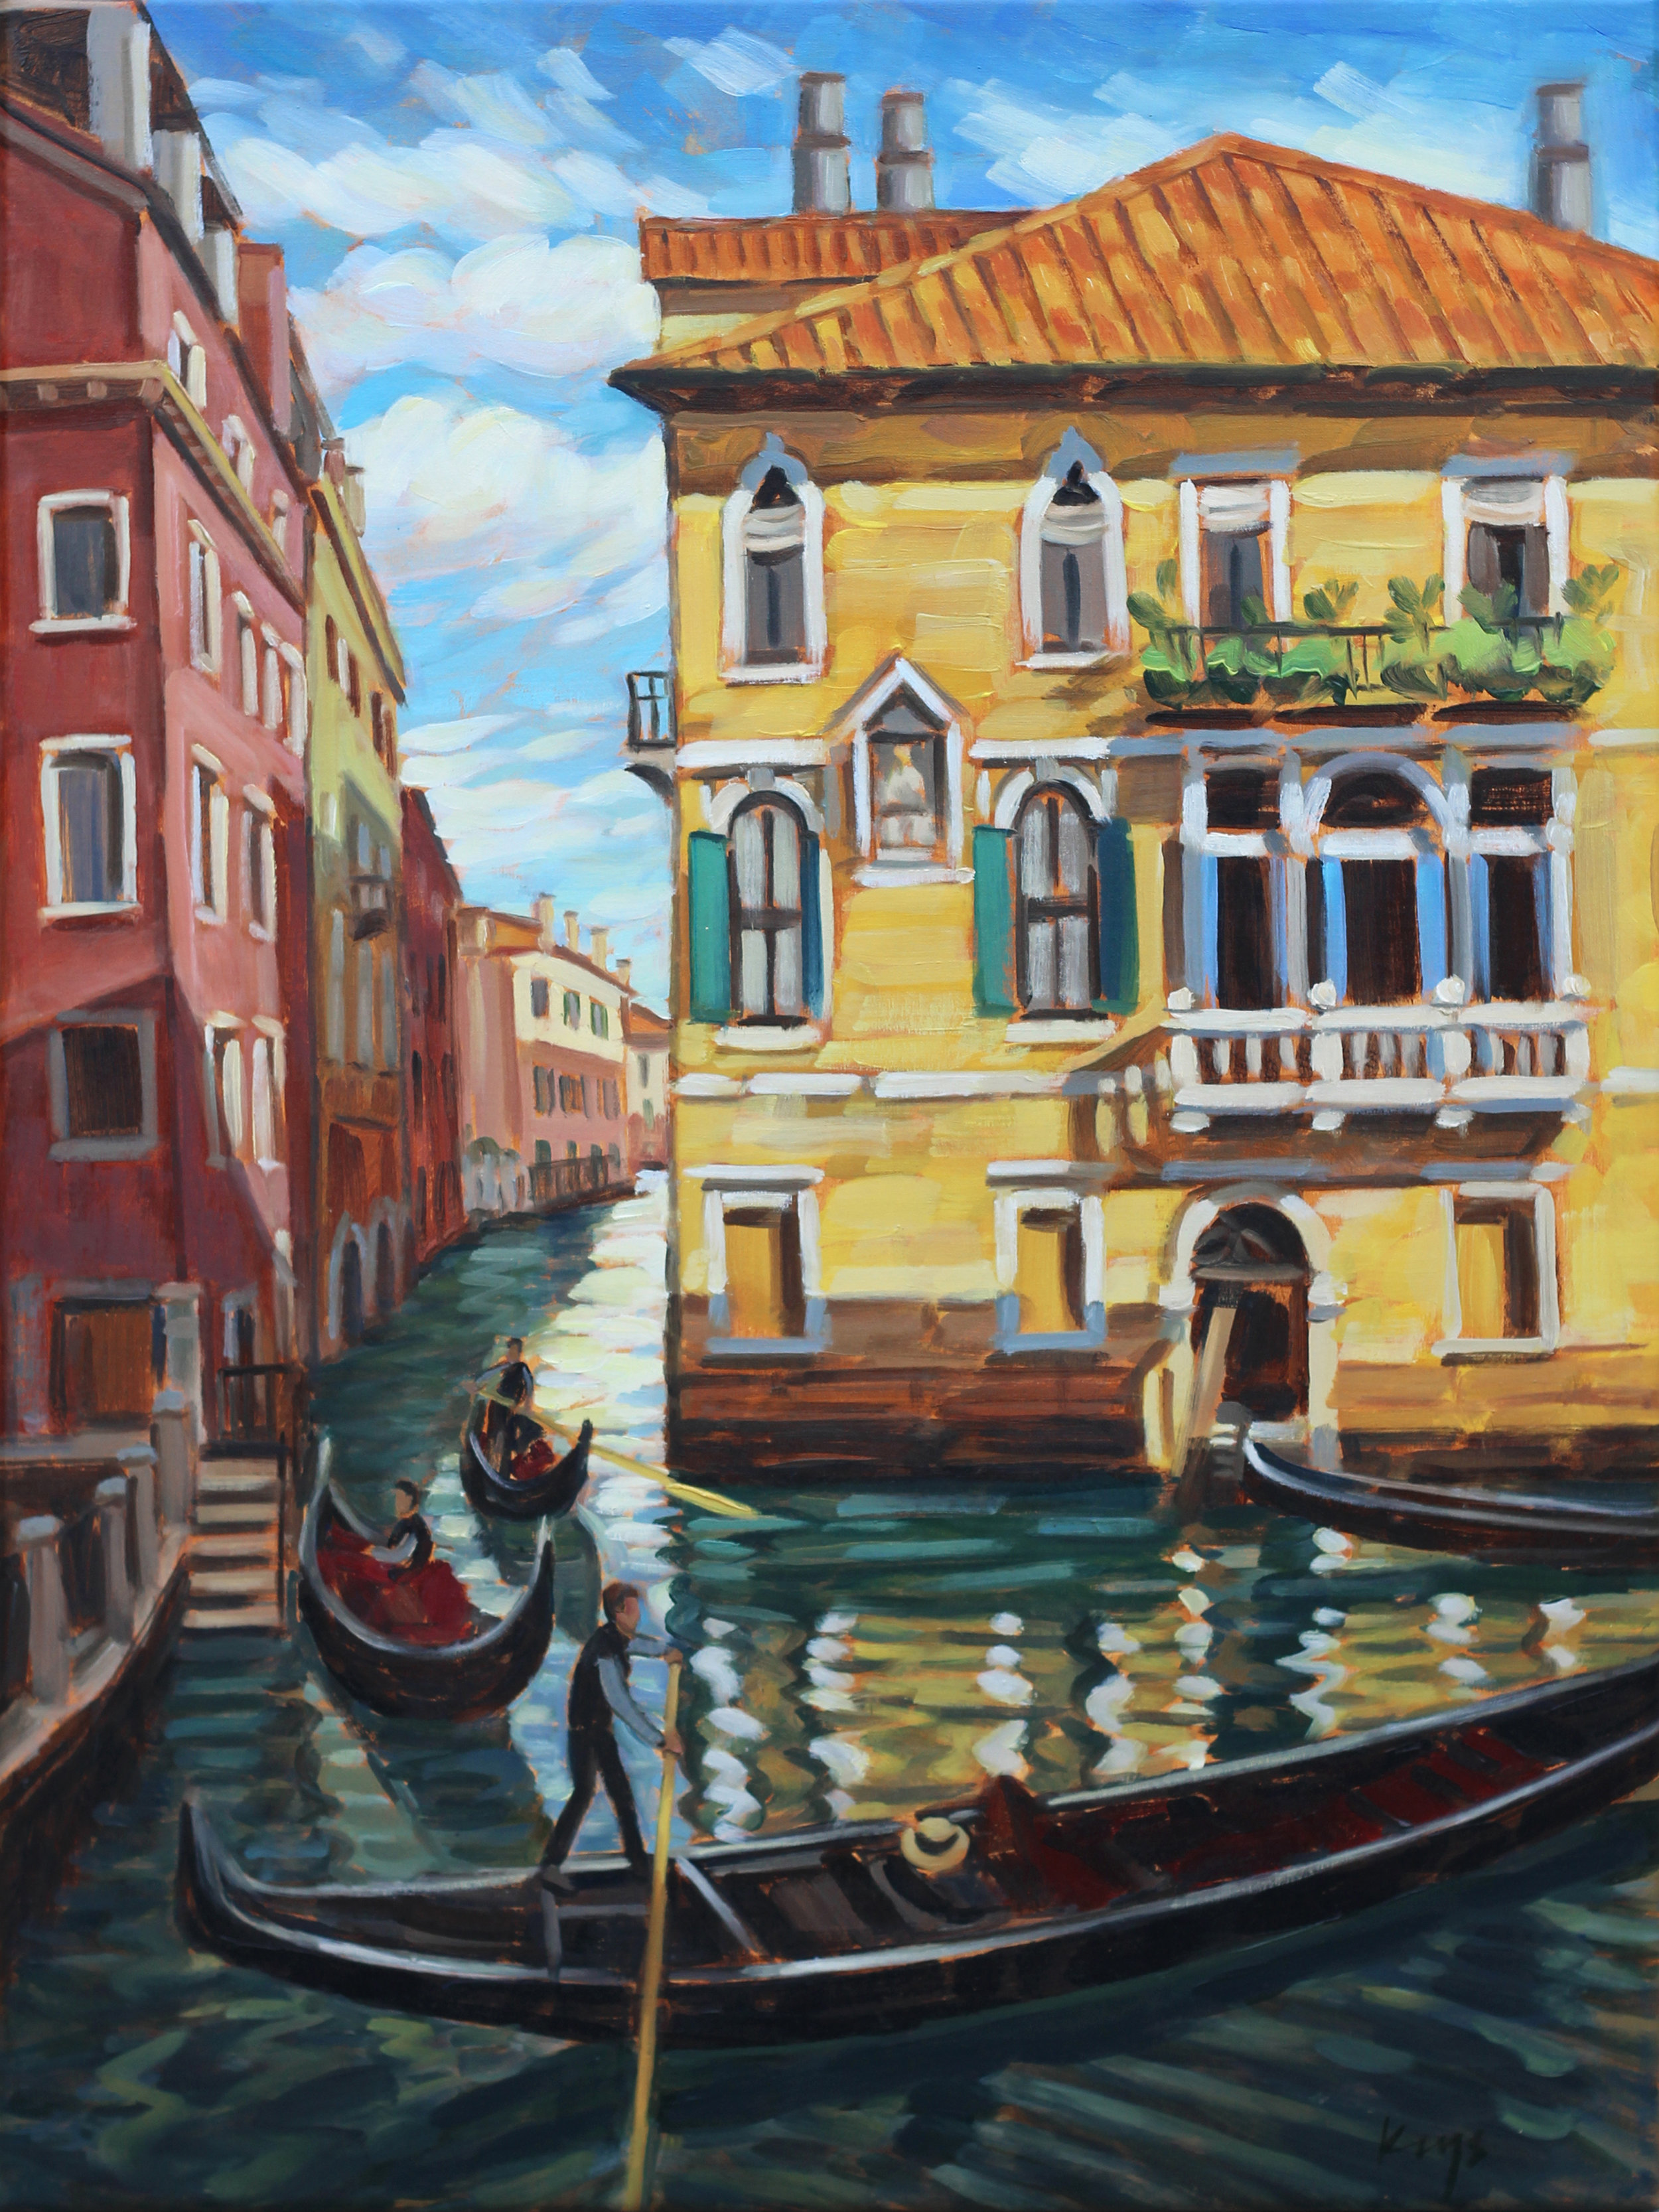 Venice Painting Number 1.jpg